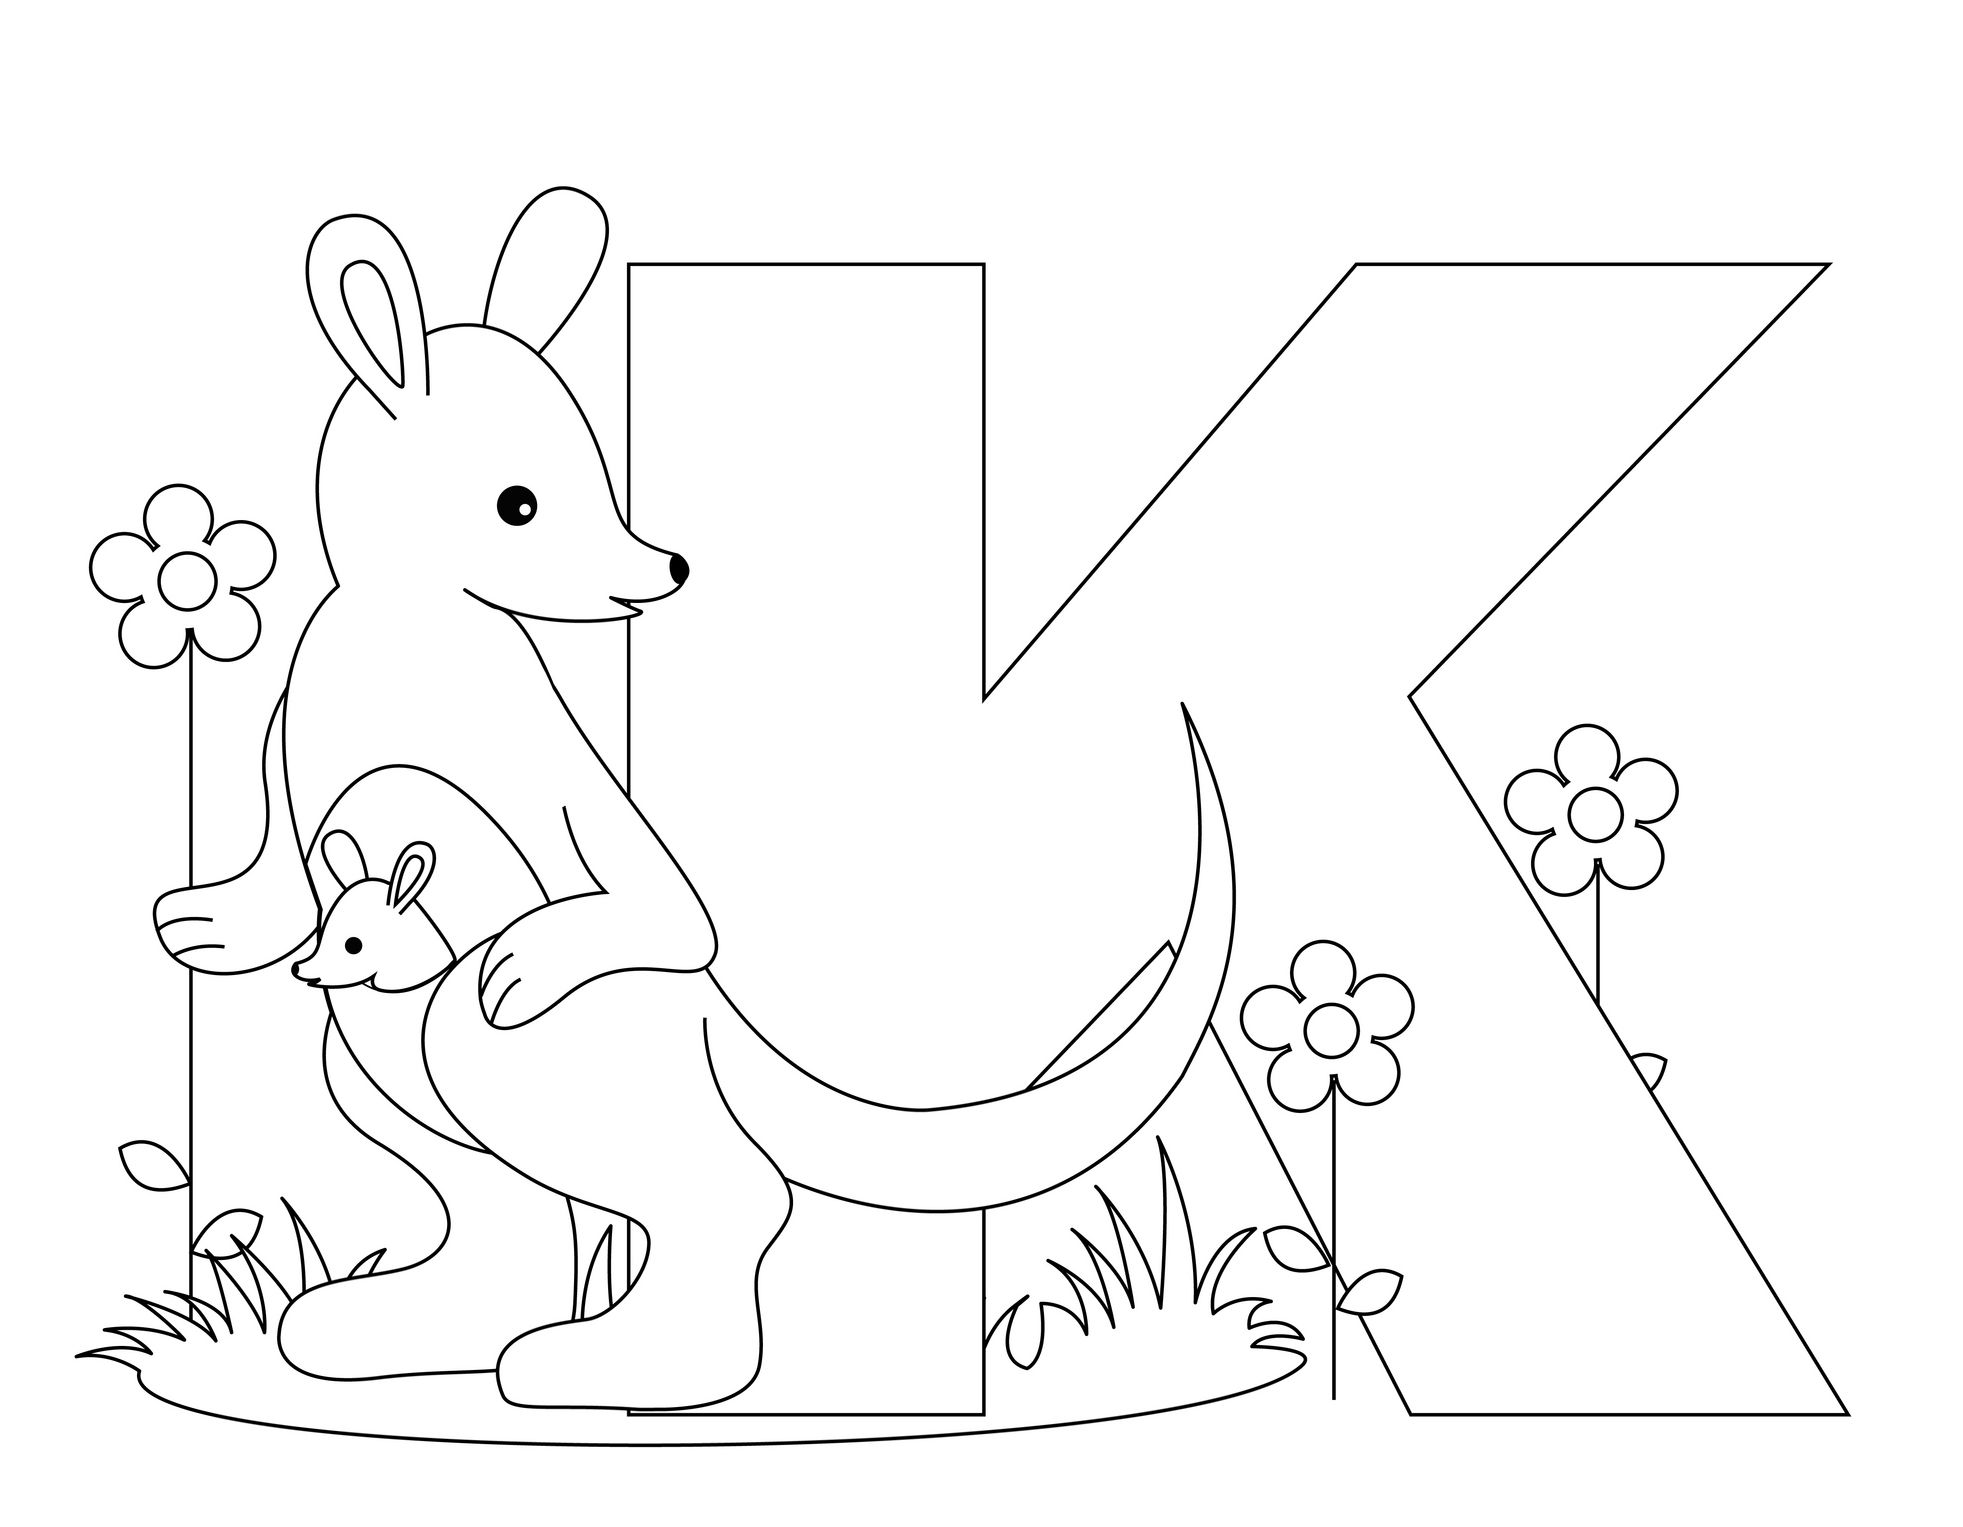 Printable color pages for kindergarten - Free Kindergarten Alphabet Worksheets Animal Alphabet Letter K Coloring Worksheet From Kiboomu Worksheets